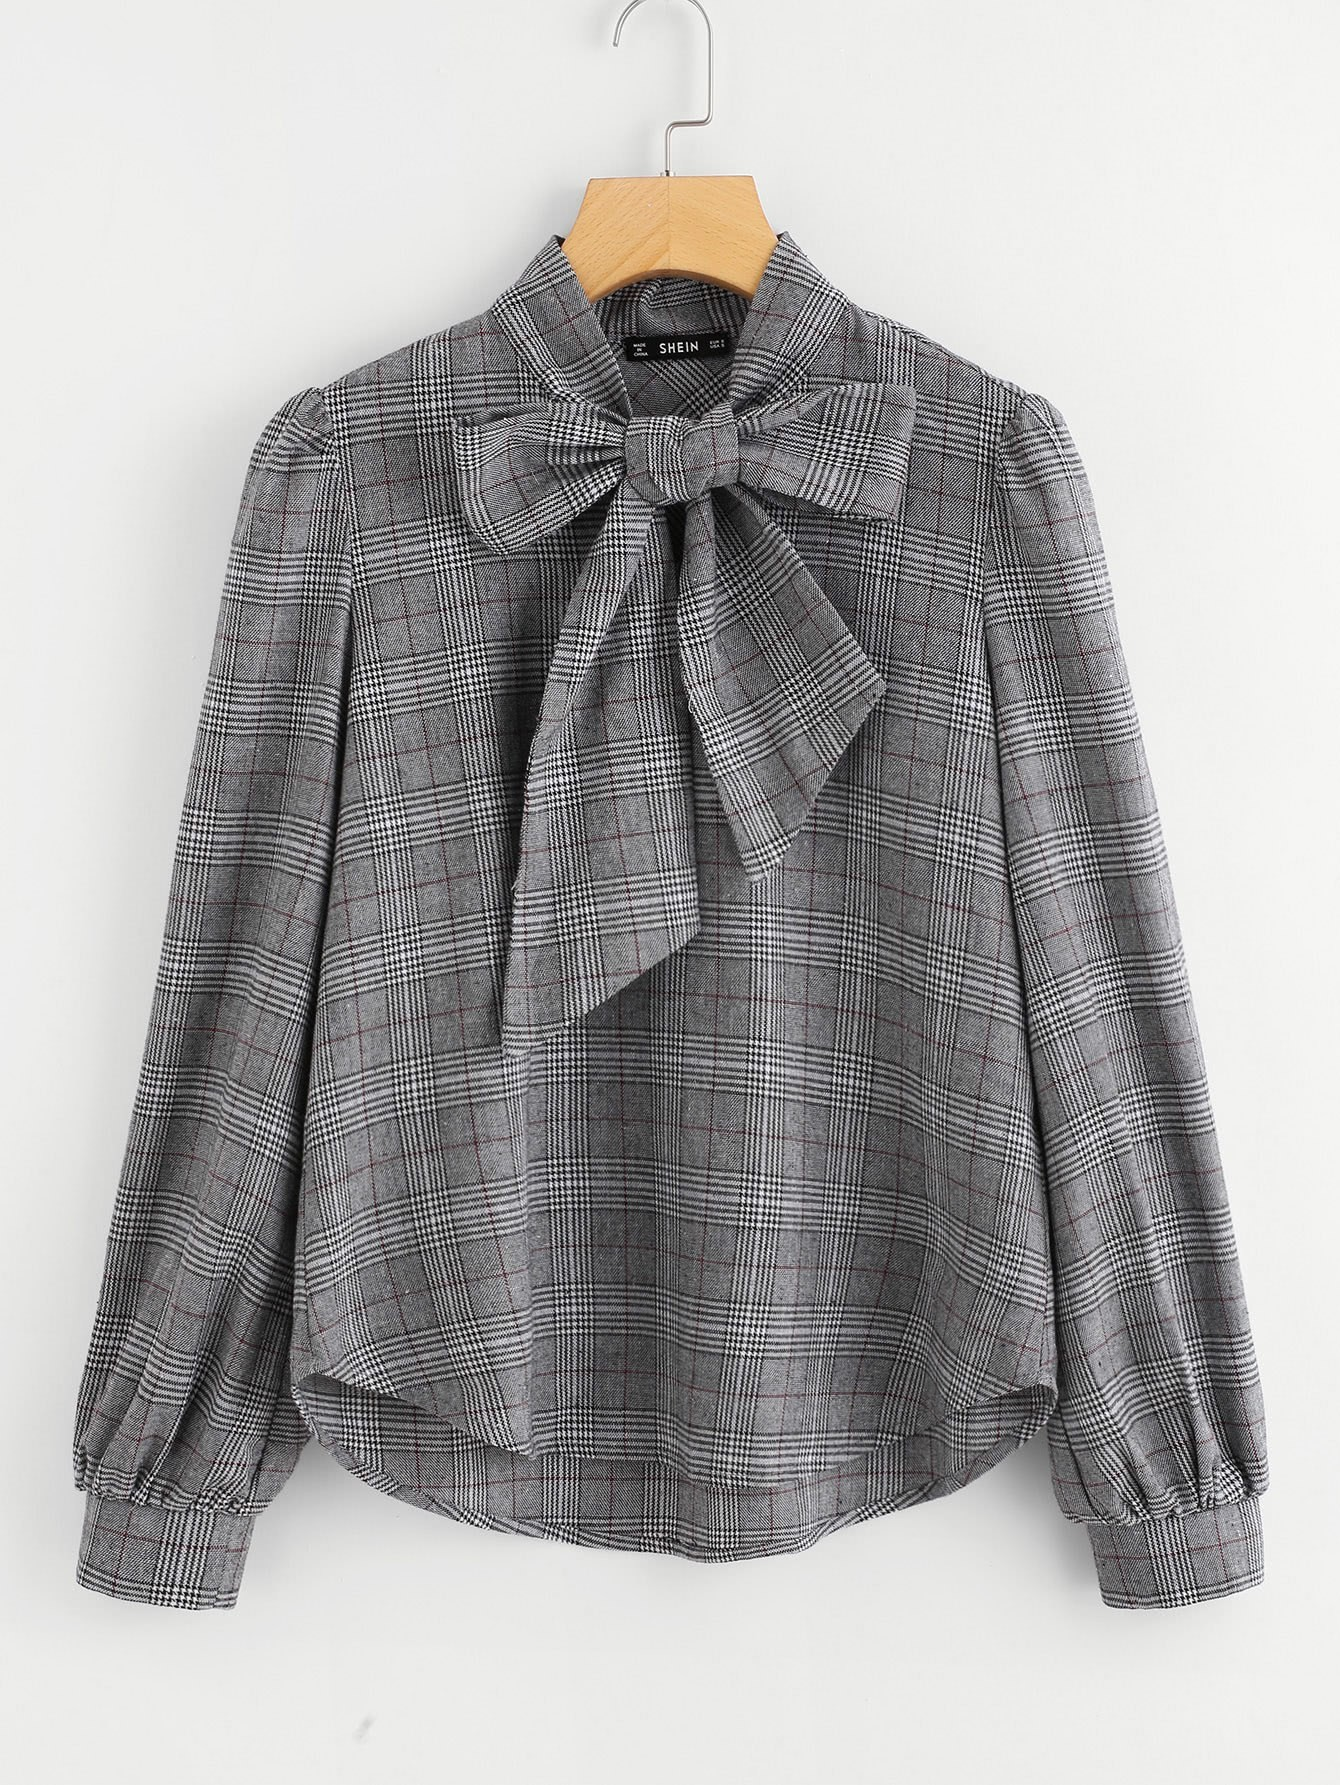 http://de.shein.com/Bow-Tie-Neck-Plaid-Blouse-p-400201-cat-1733.html?utm_source=lifefeminin&utm_medium=blogger&url_from=lifefeminin